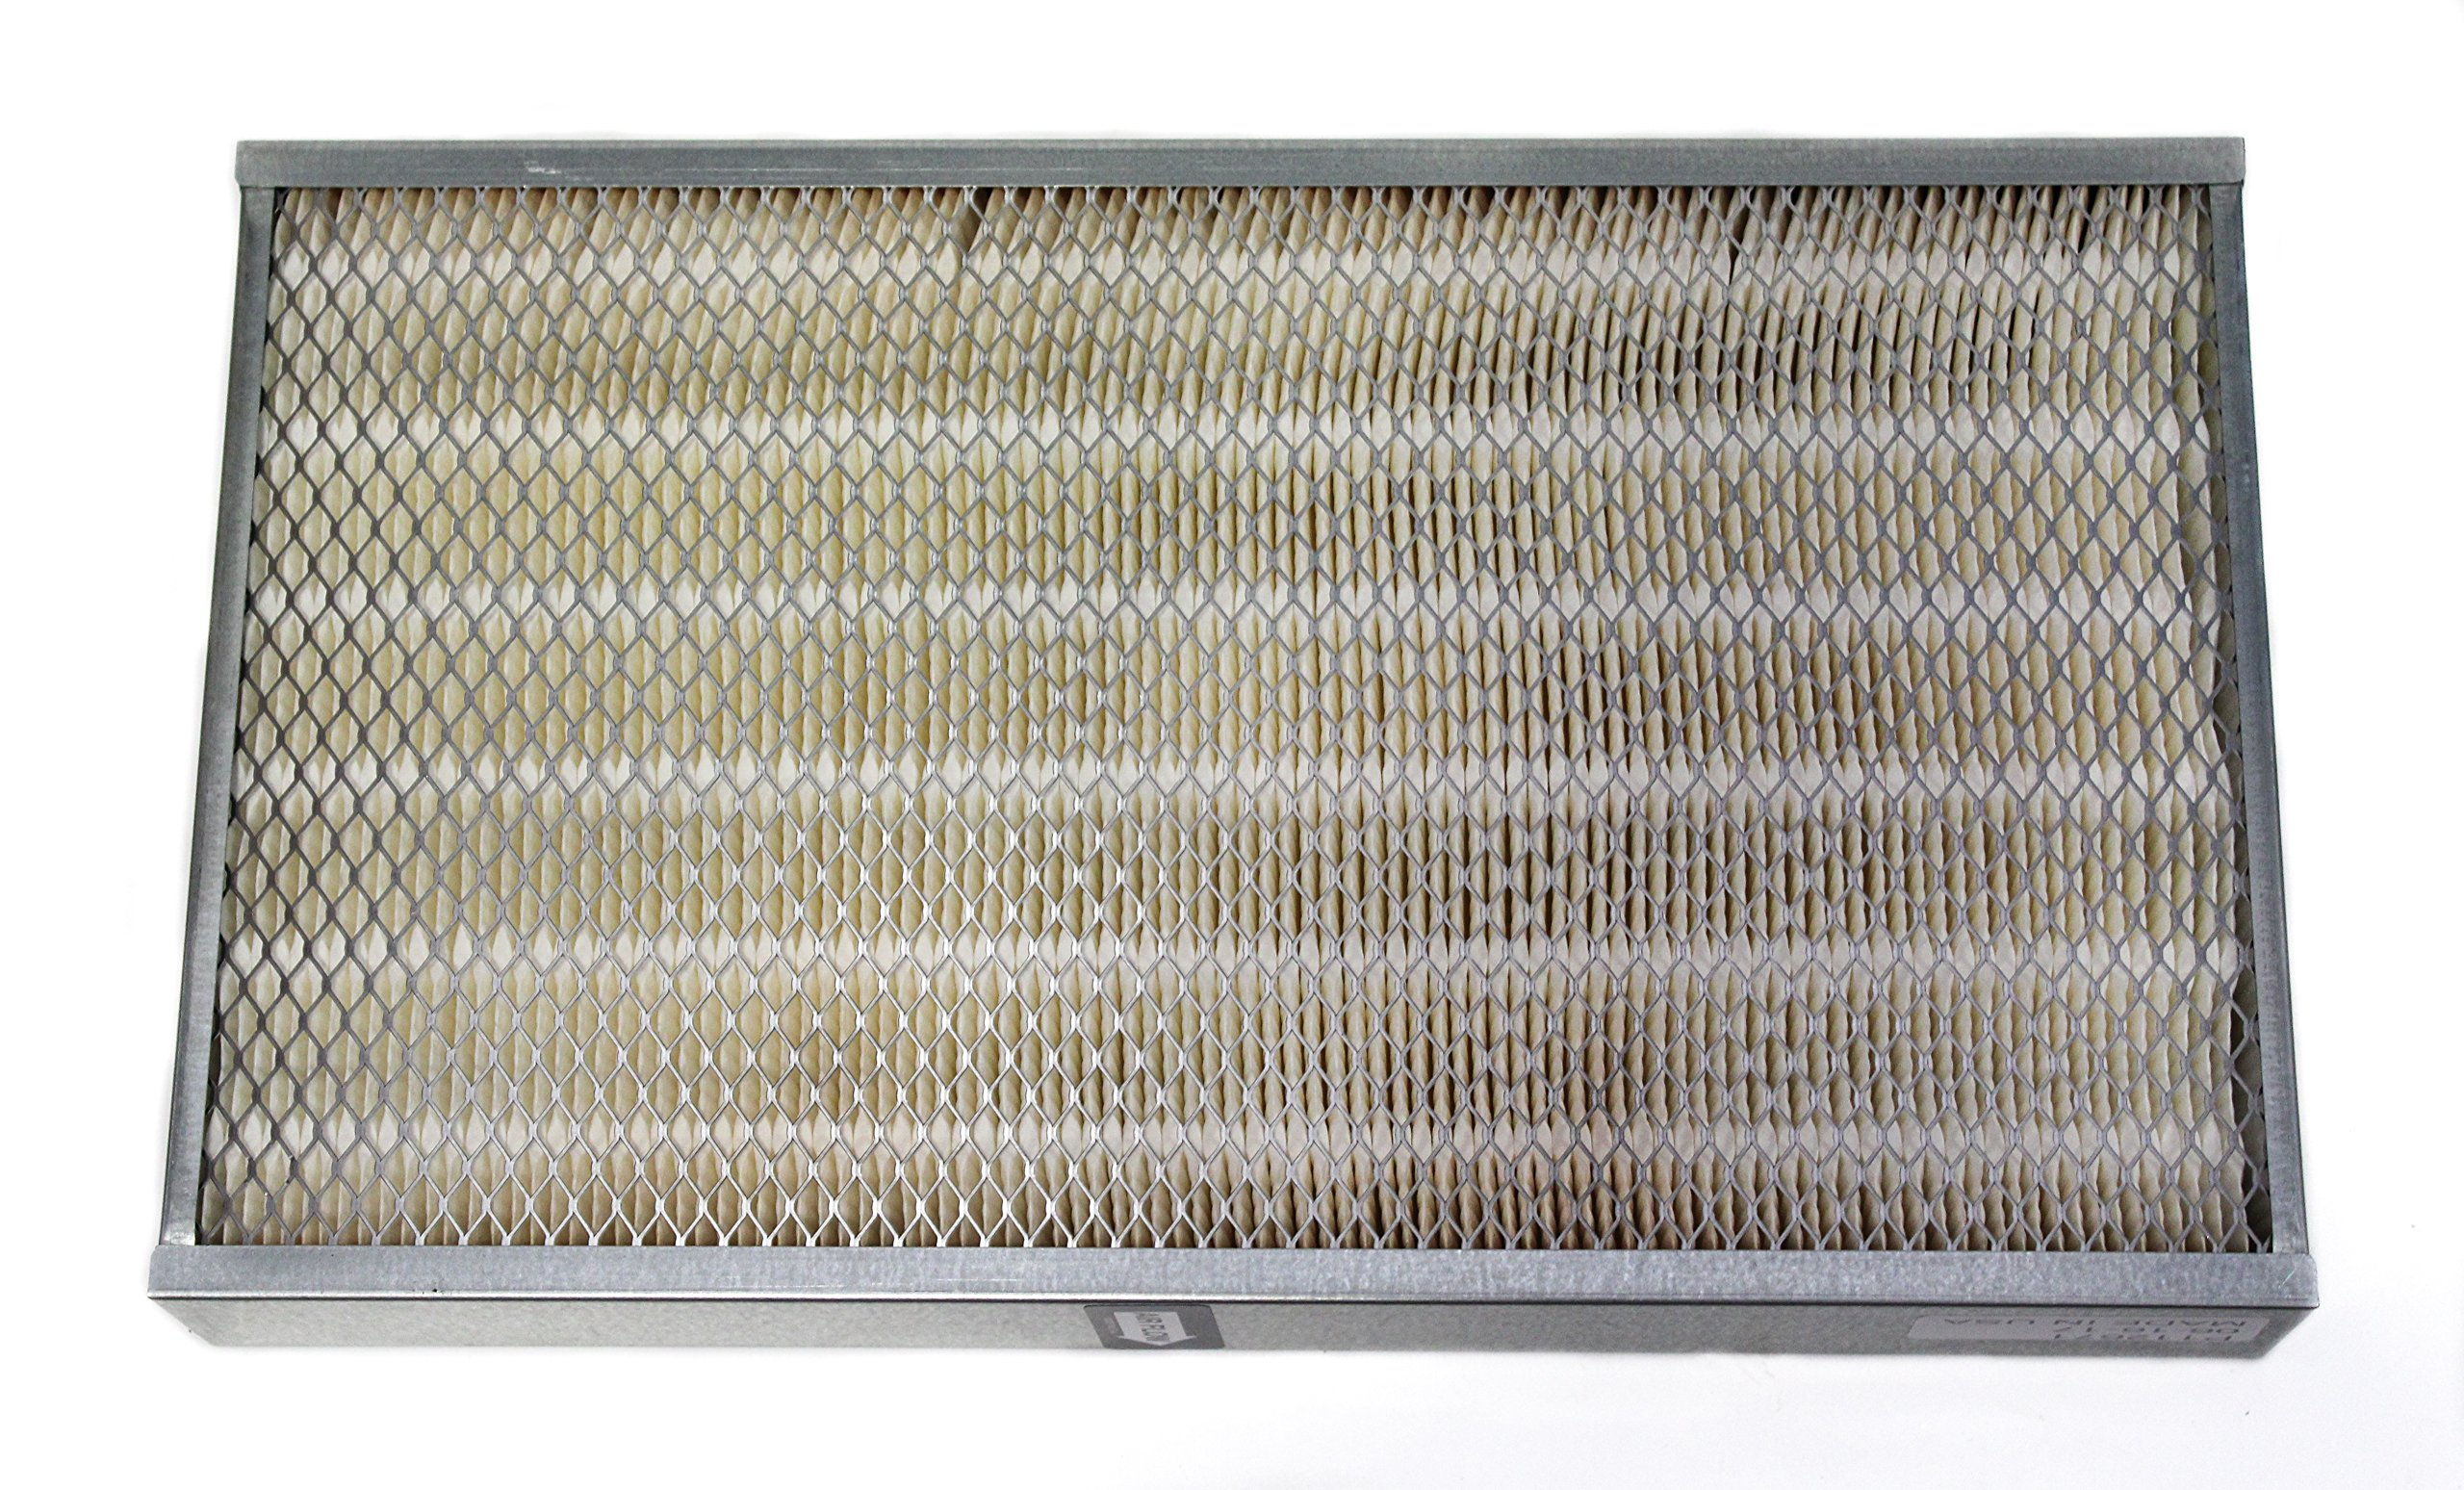 INTAKE FILTER FOR UNIT R-5075 PART# 78R5320